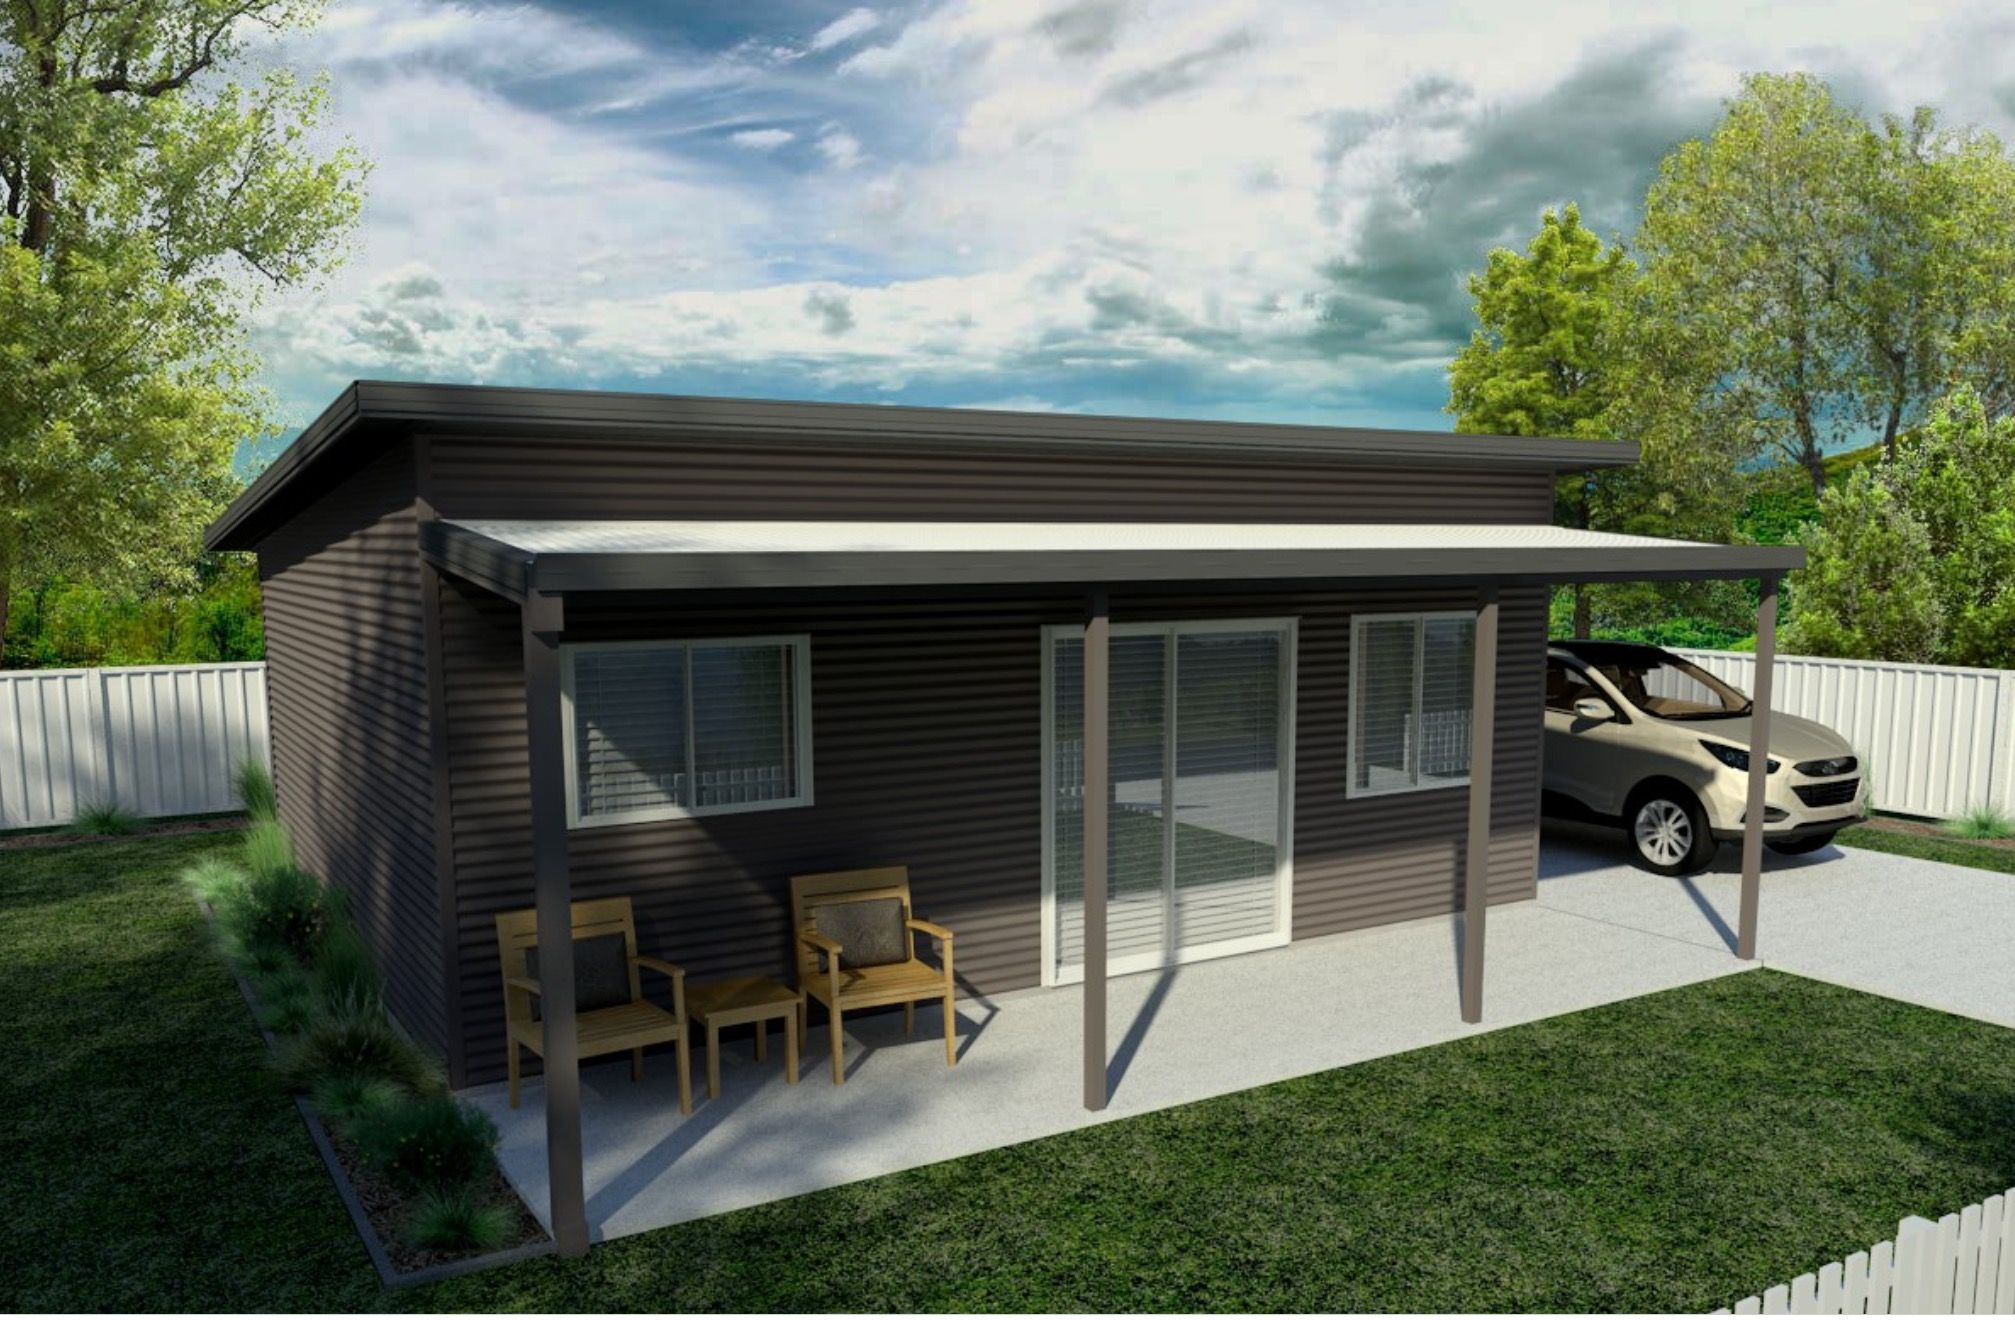 8ac5f6089a546789b7d2d3282ca4c81a - 37+ Small Blue Roof House Design Images